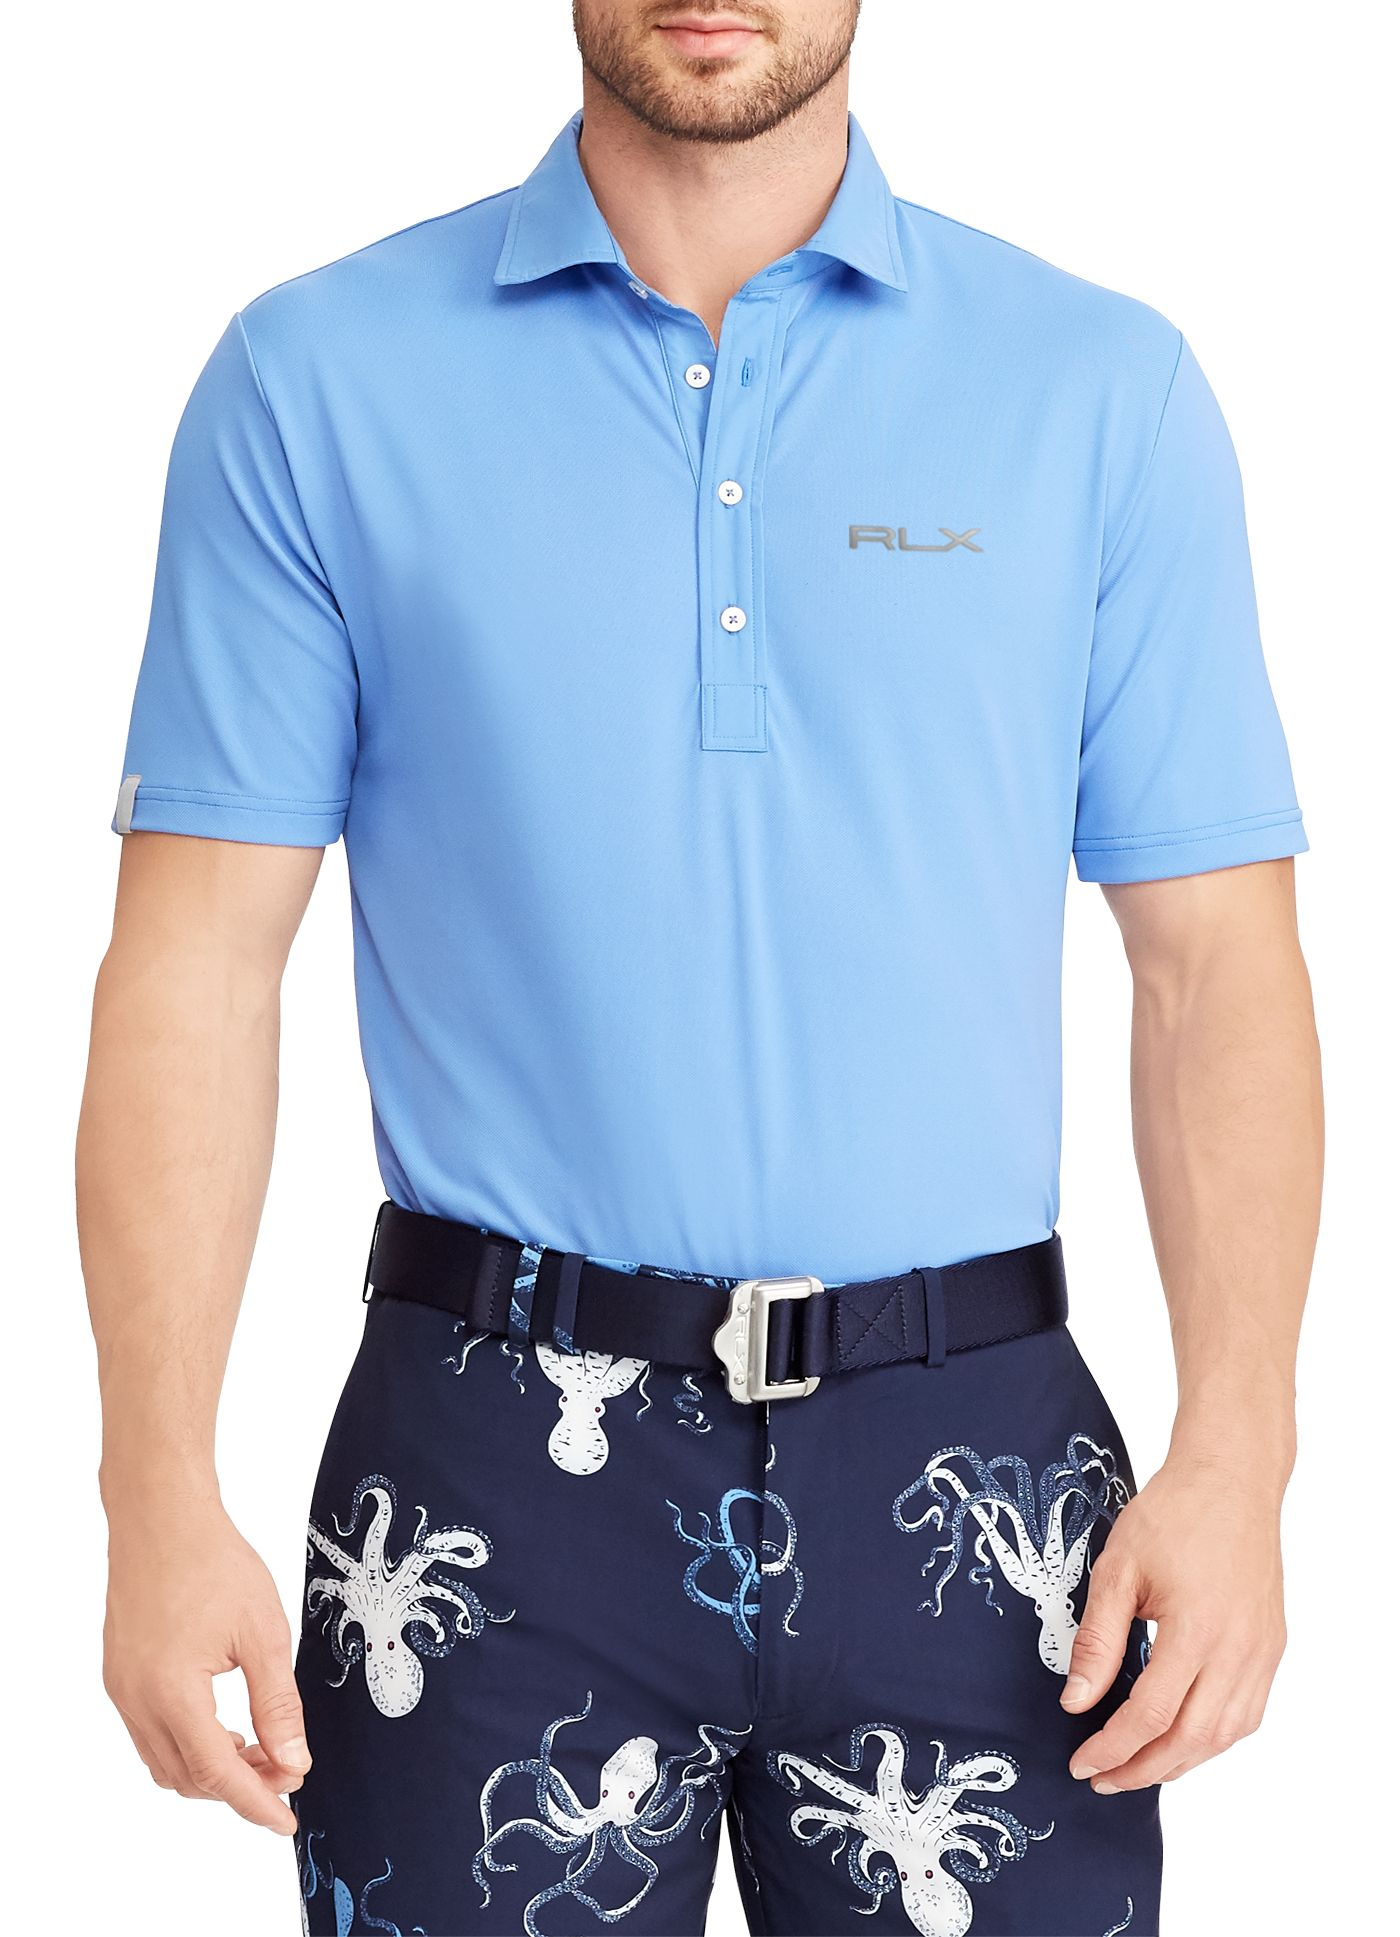 RLX Golf Men's Billy Horschel Tech Pique Golf Polo